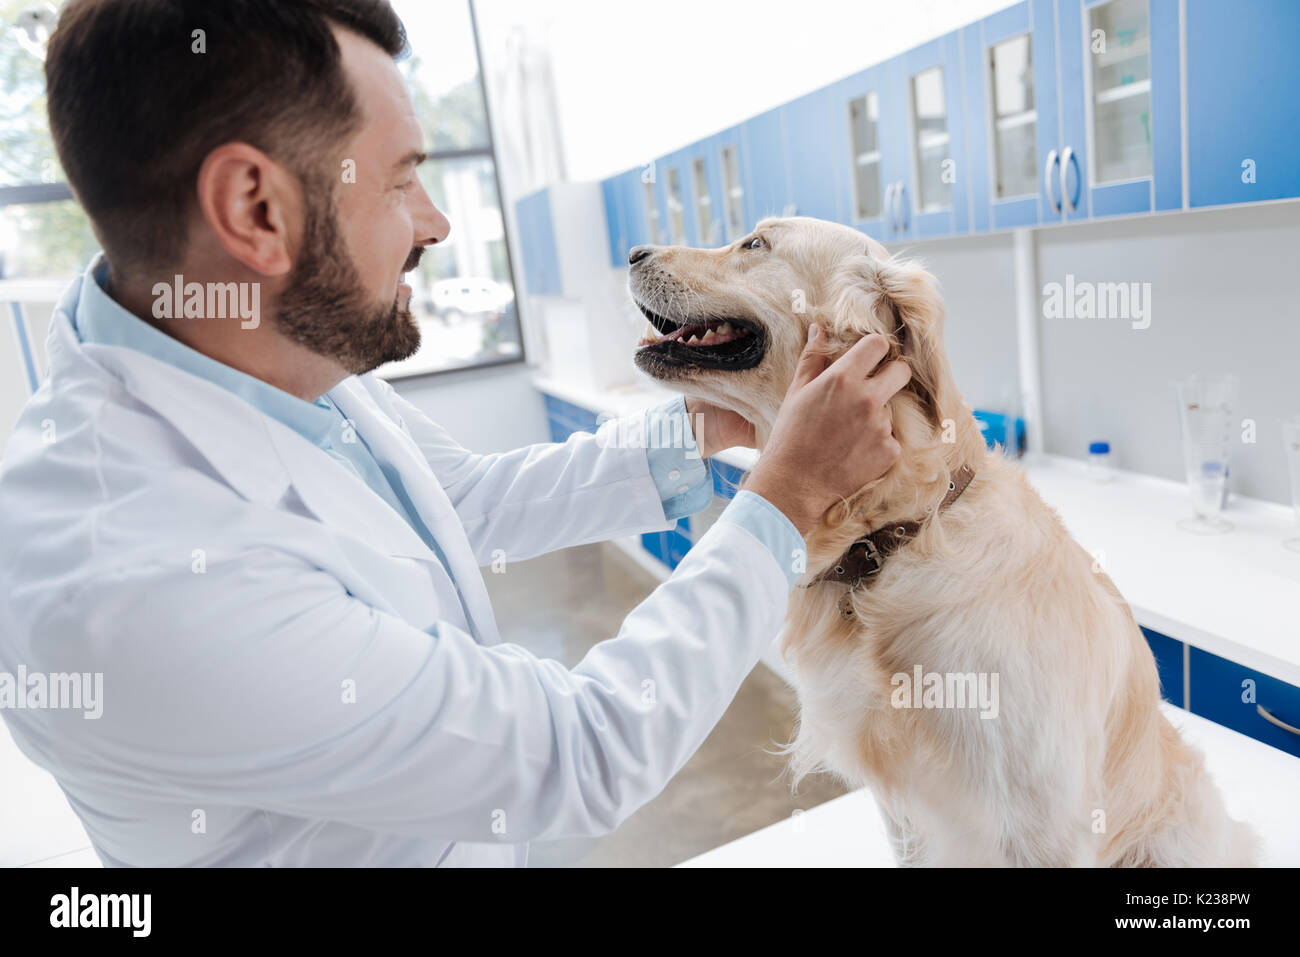 Positive delighted bearded man working with animals - Stock Image